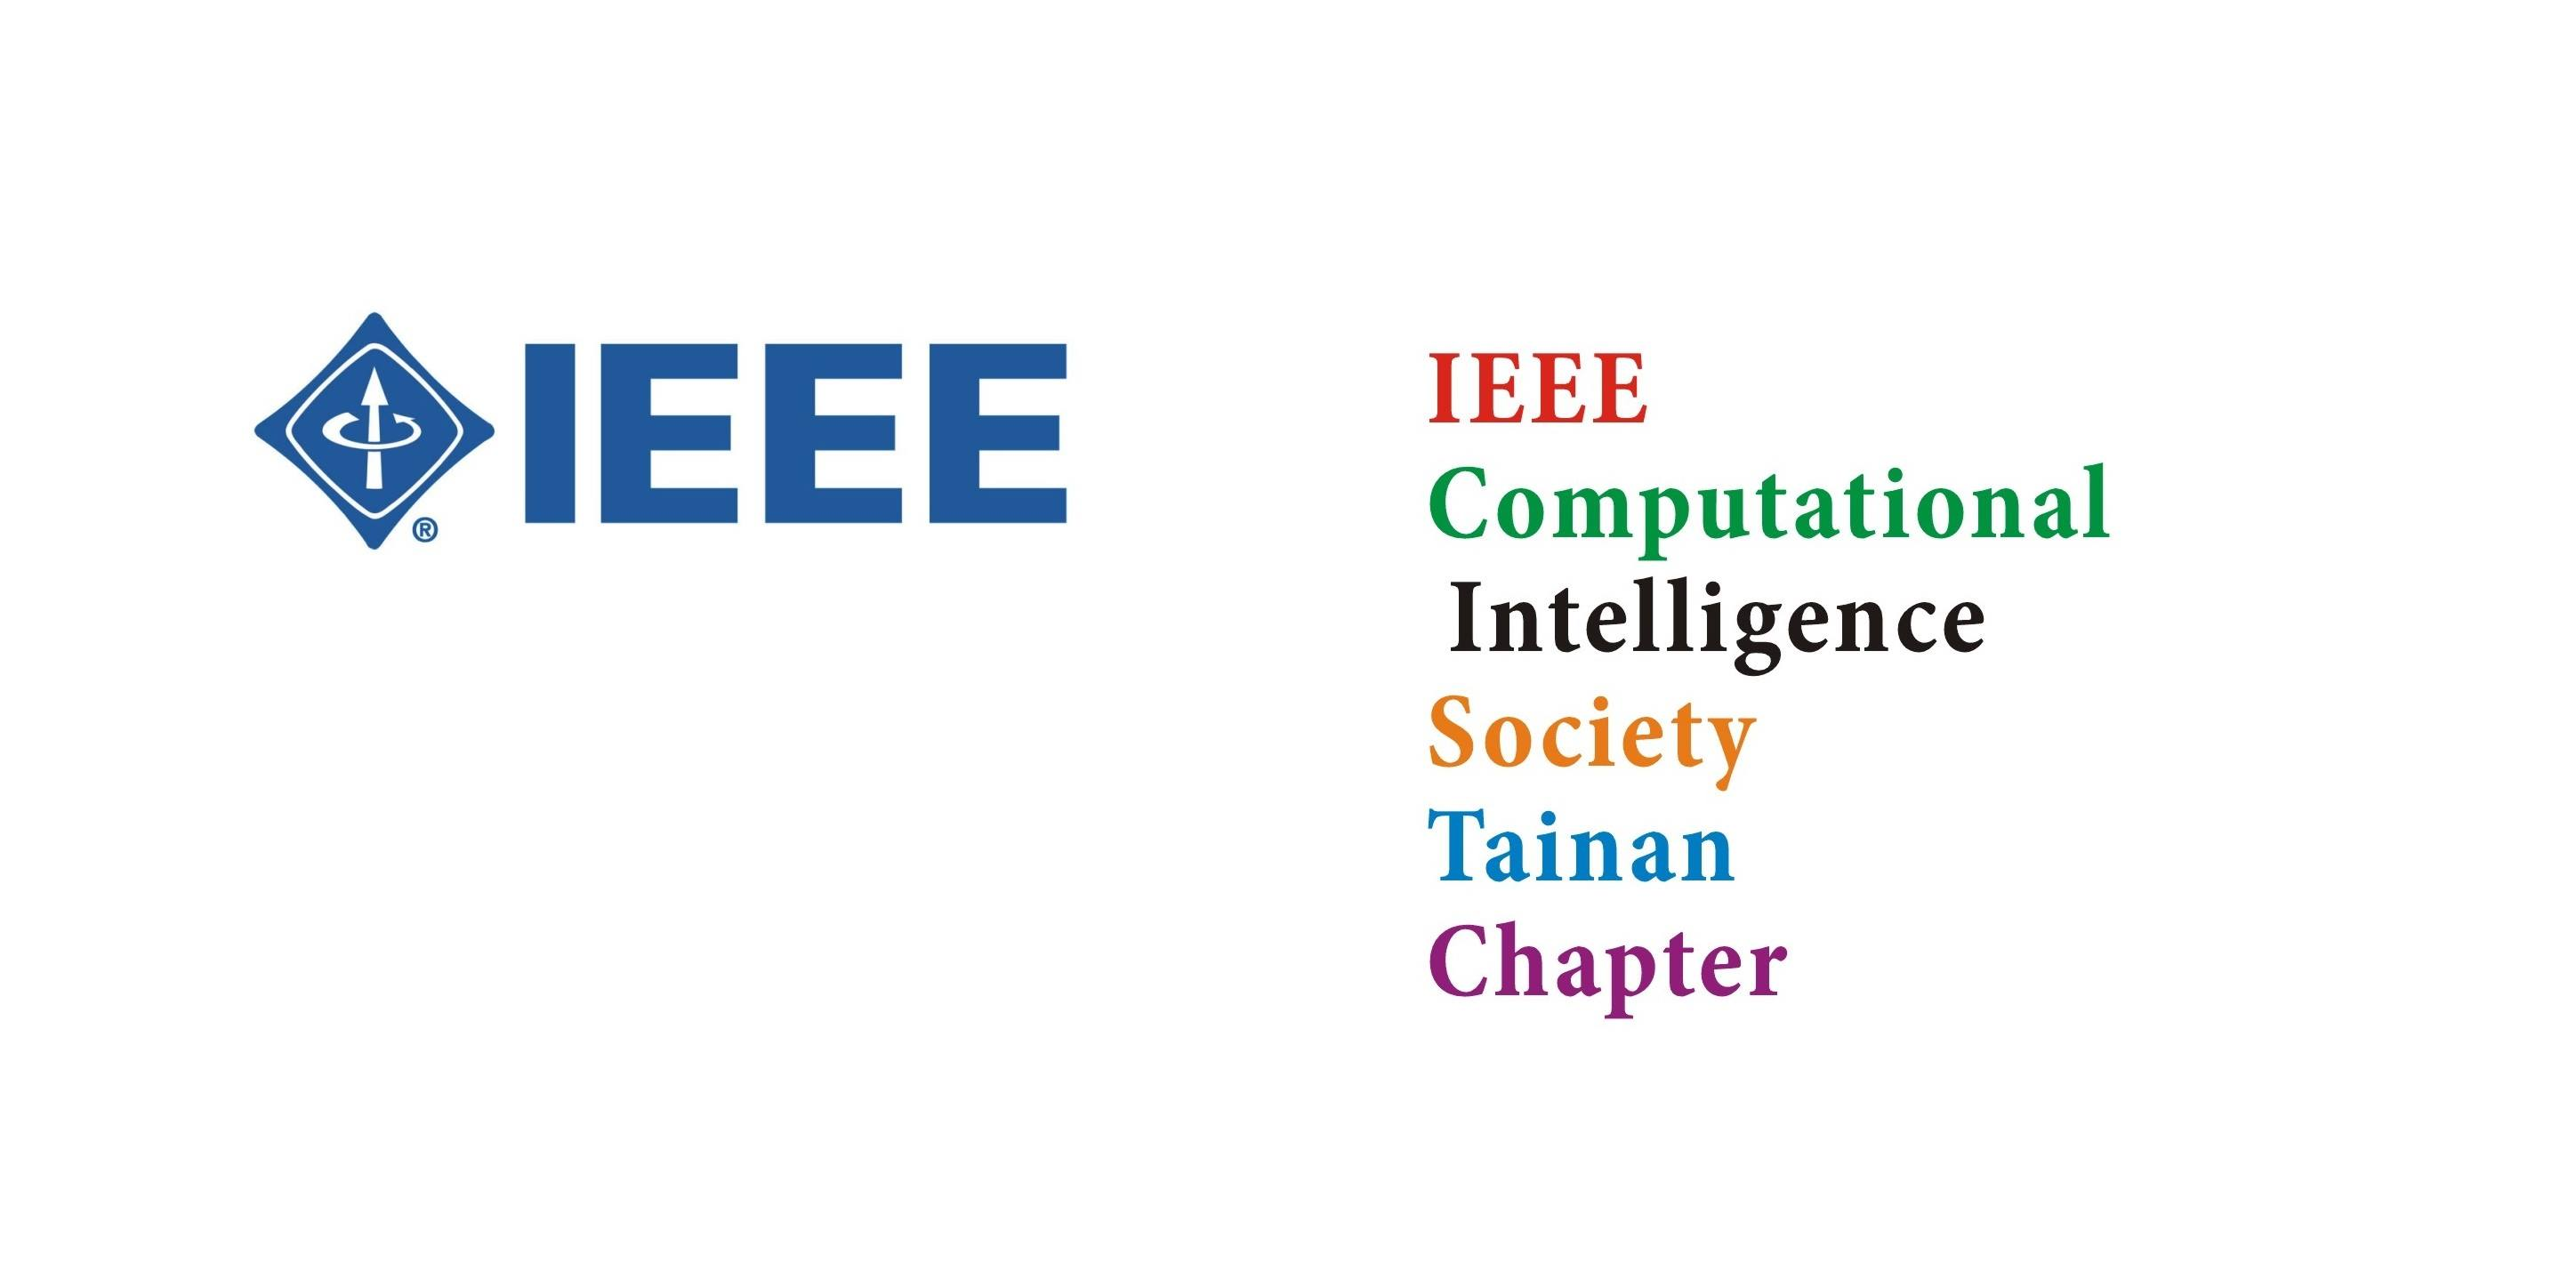 IEEE CIS Tainan Chapter